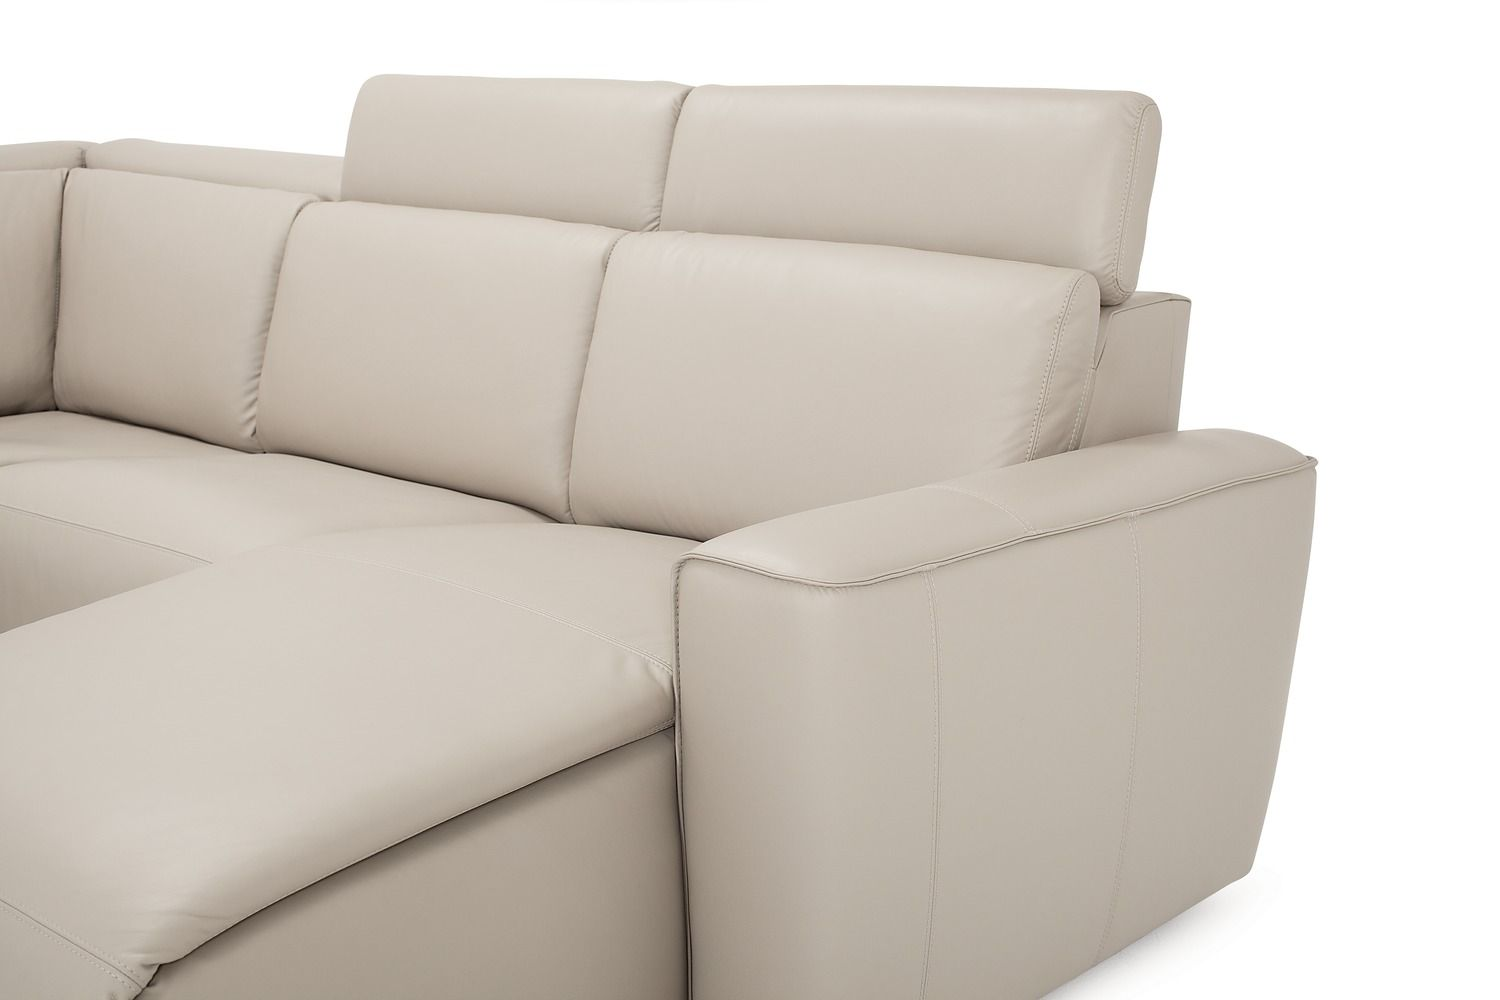 cream palliser springfield sectional sofa